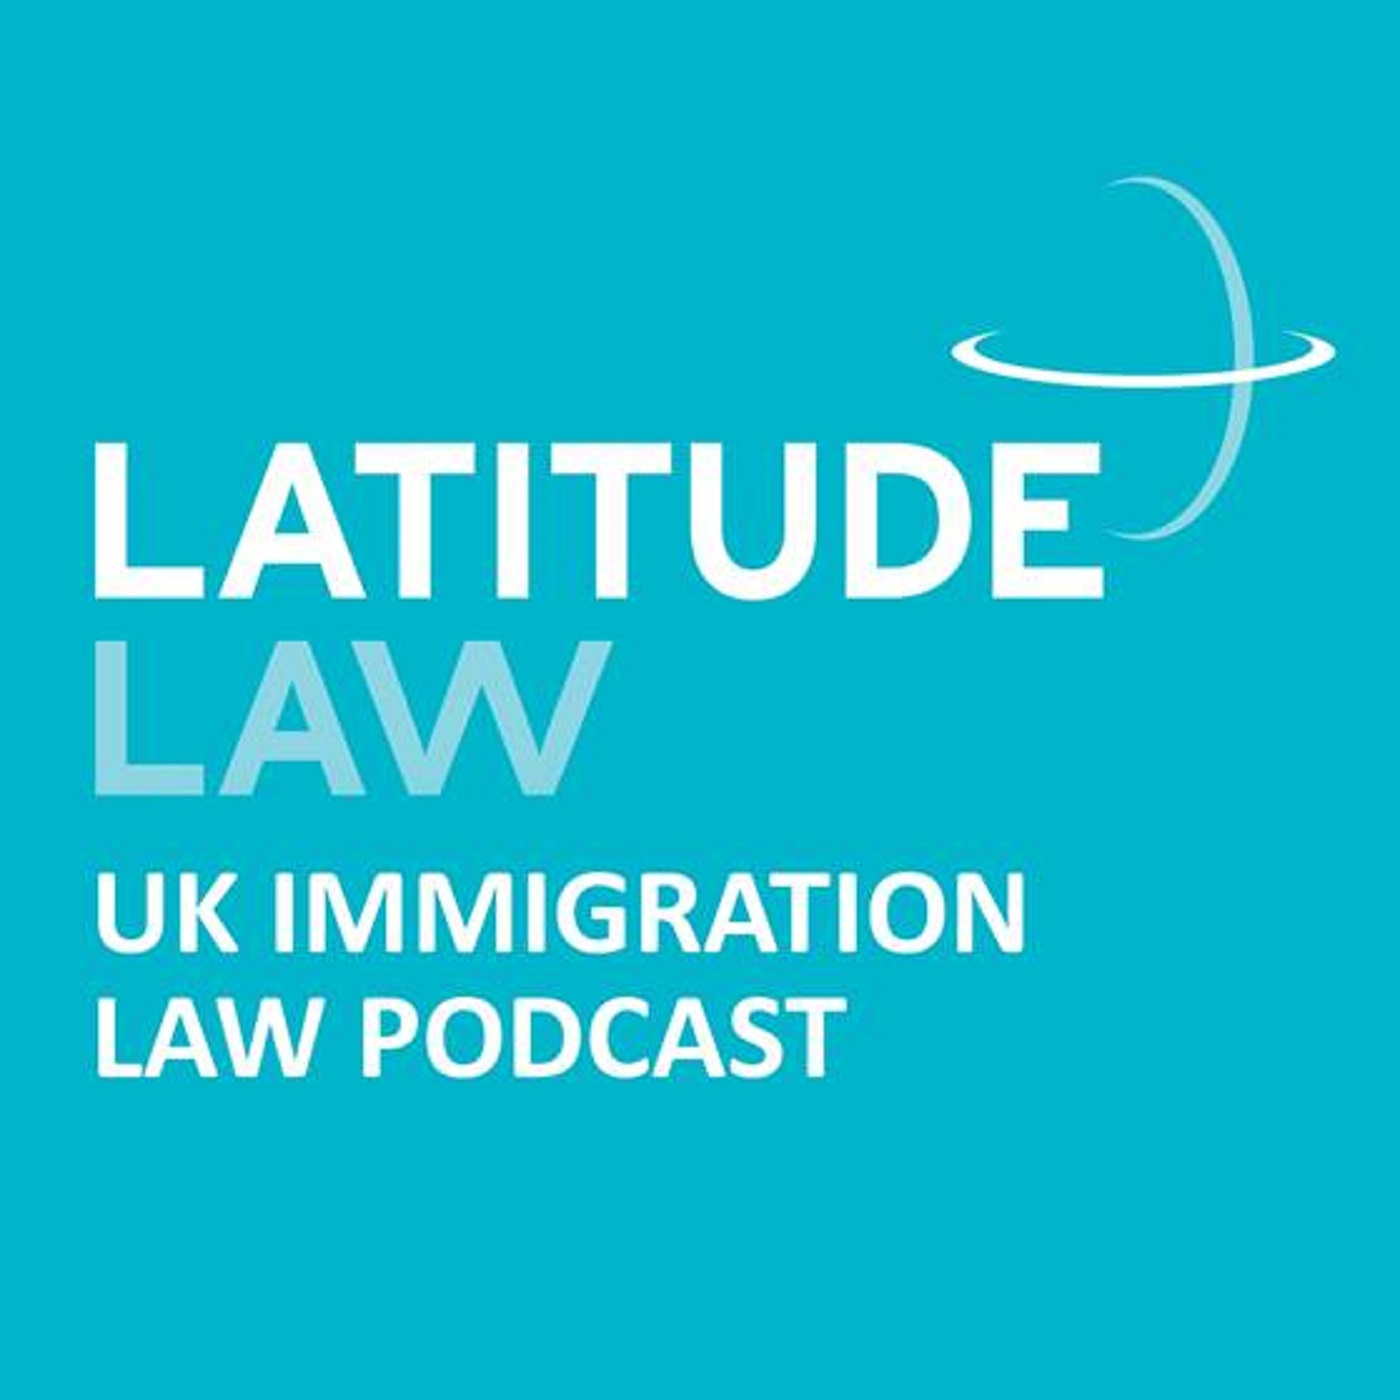 Latitude Law UK Immigration Law Podcast